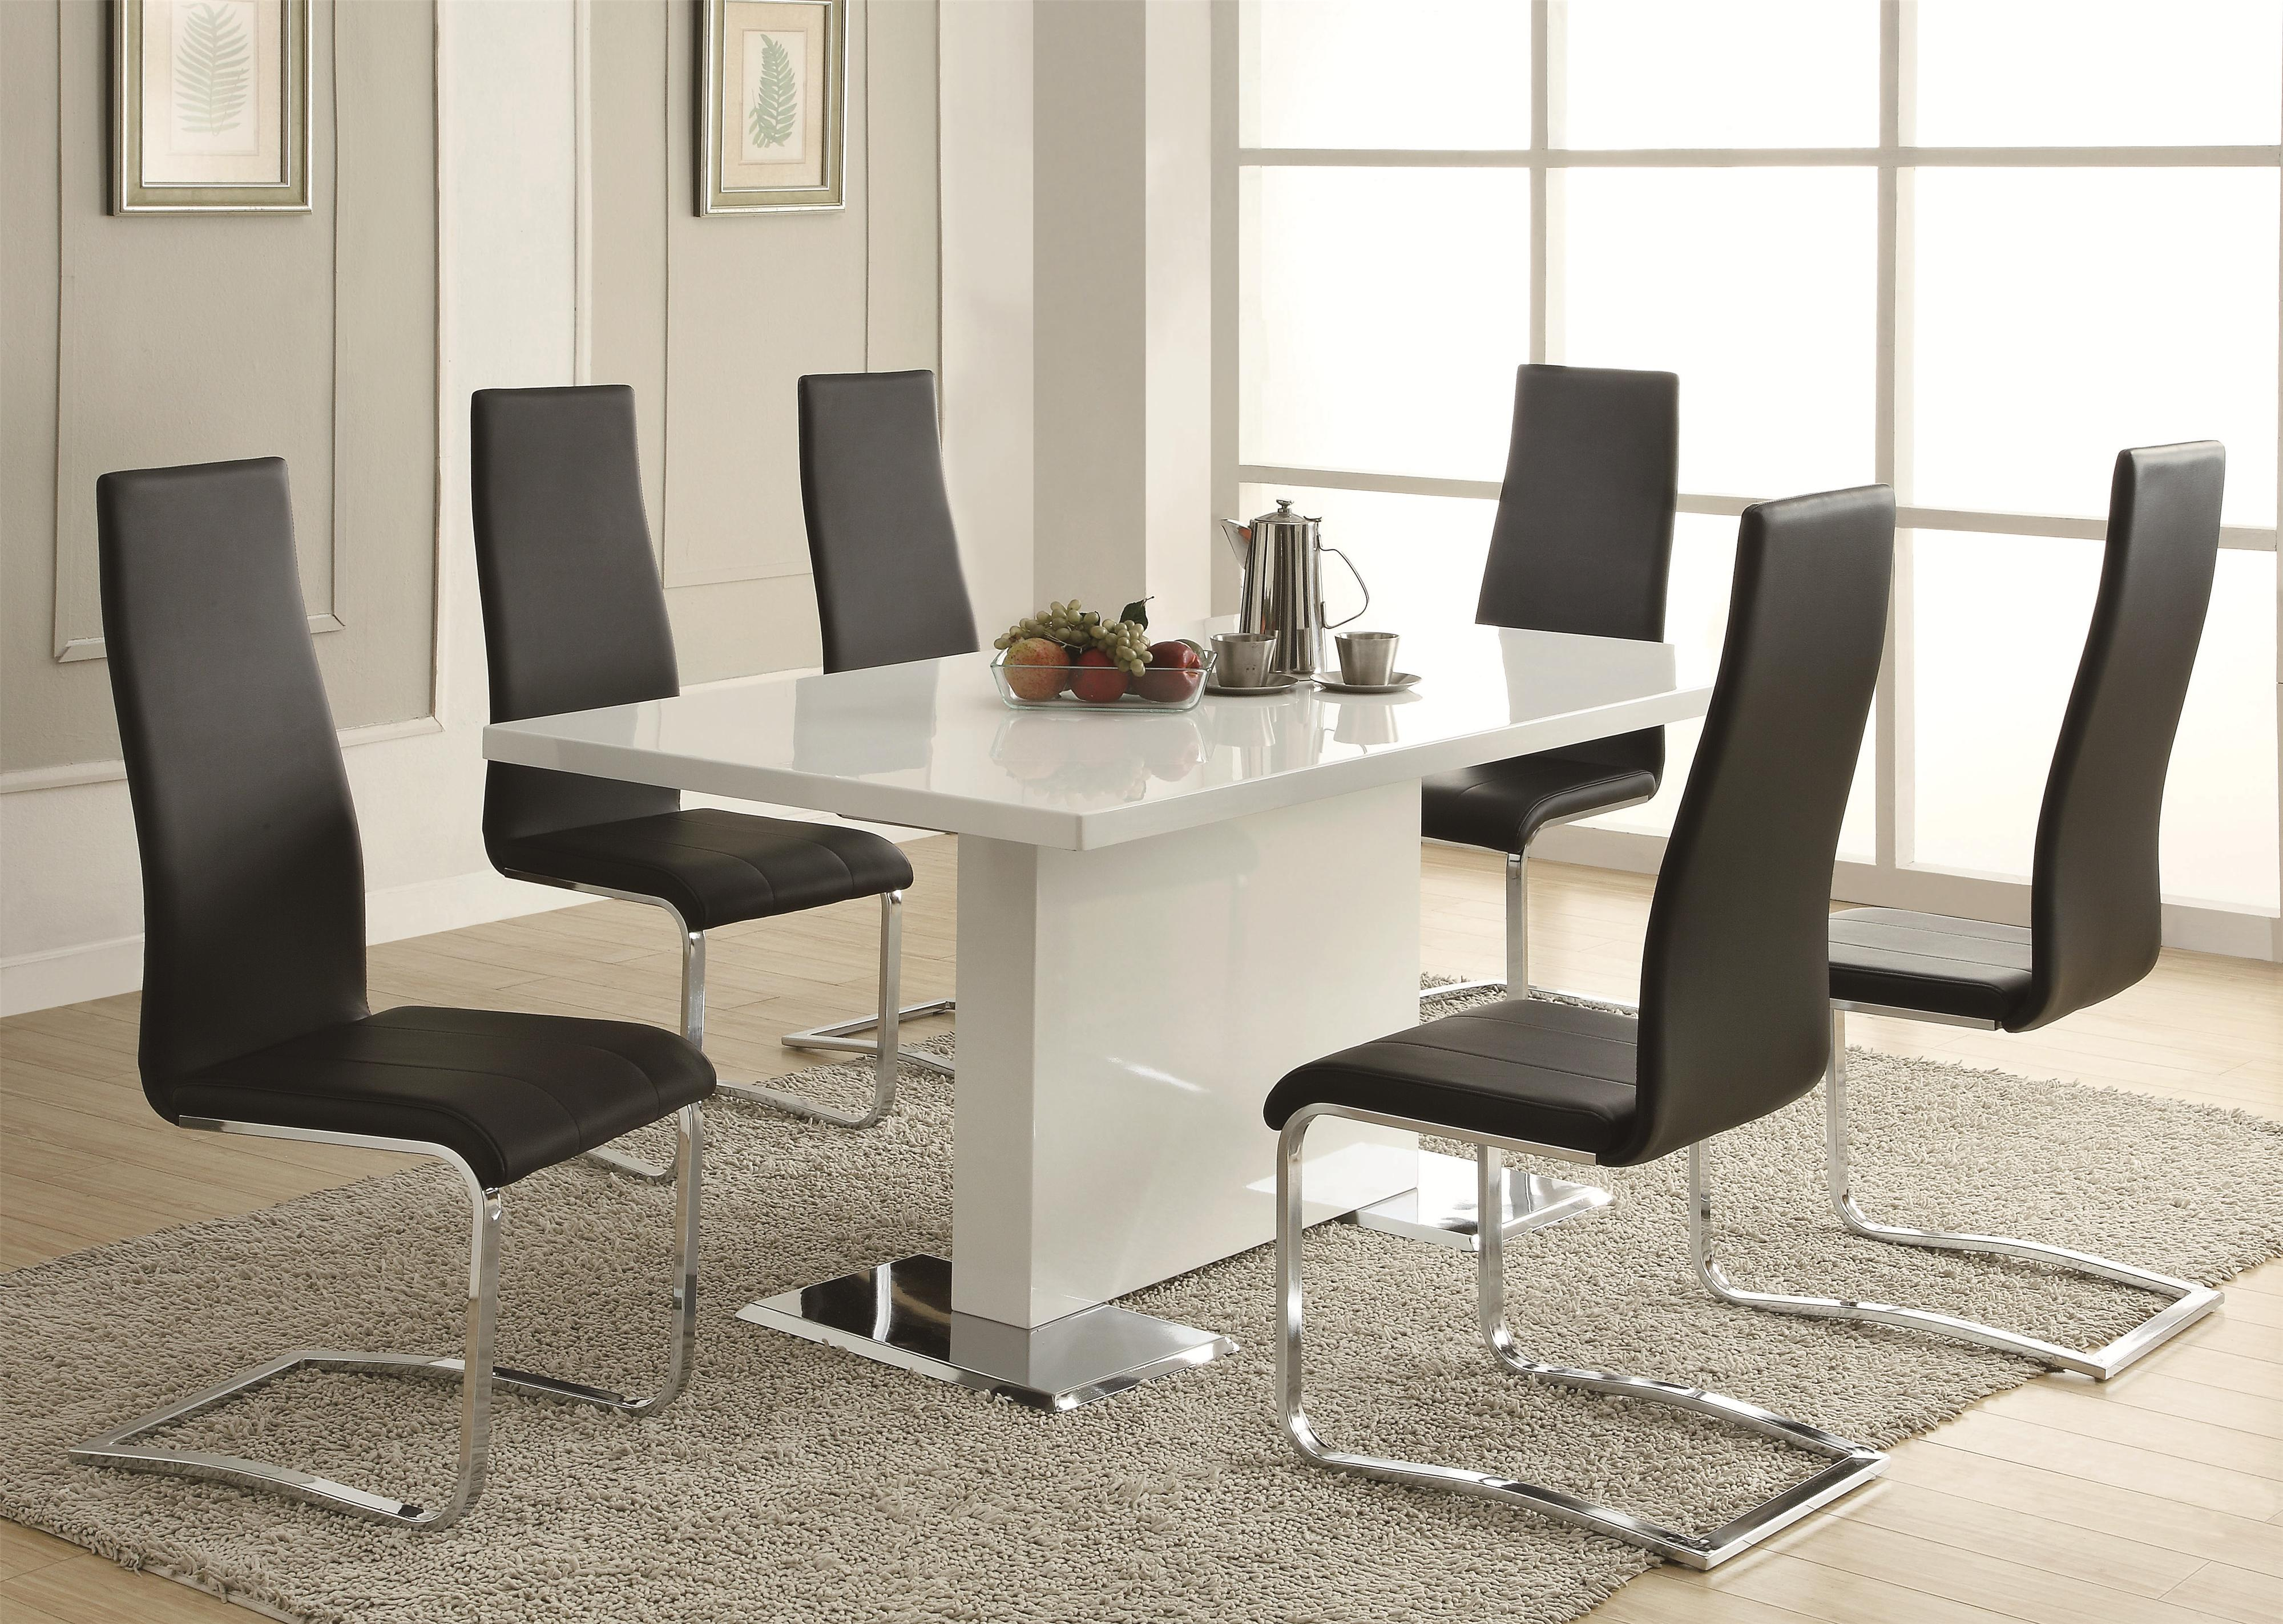 kitchen table and chairs Coaster Modern Dining White Dining Table with Chrome Metal Base Coaster Fine Furniture